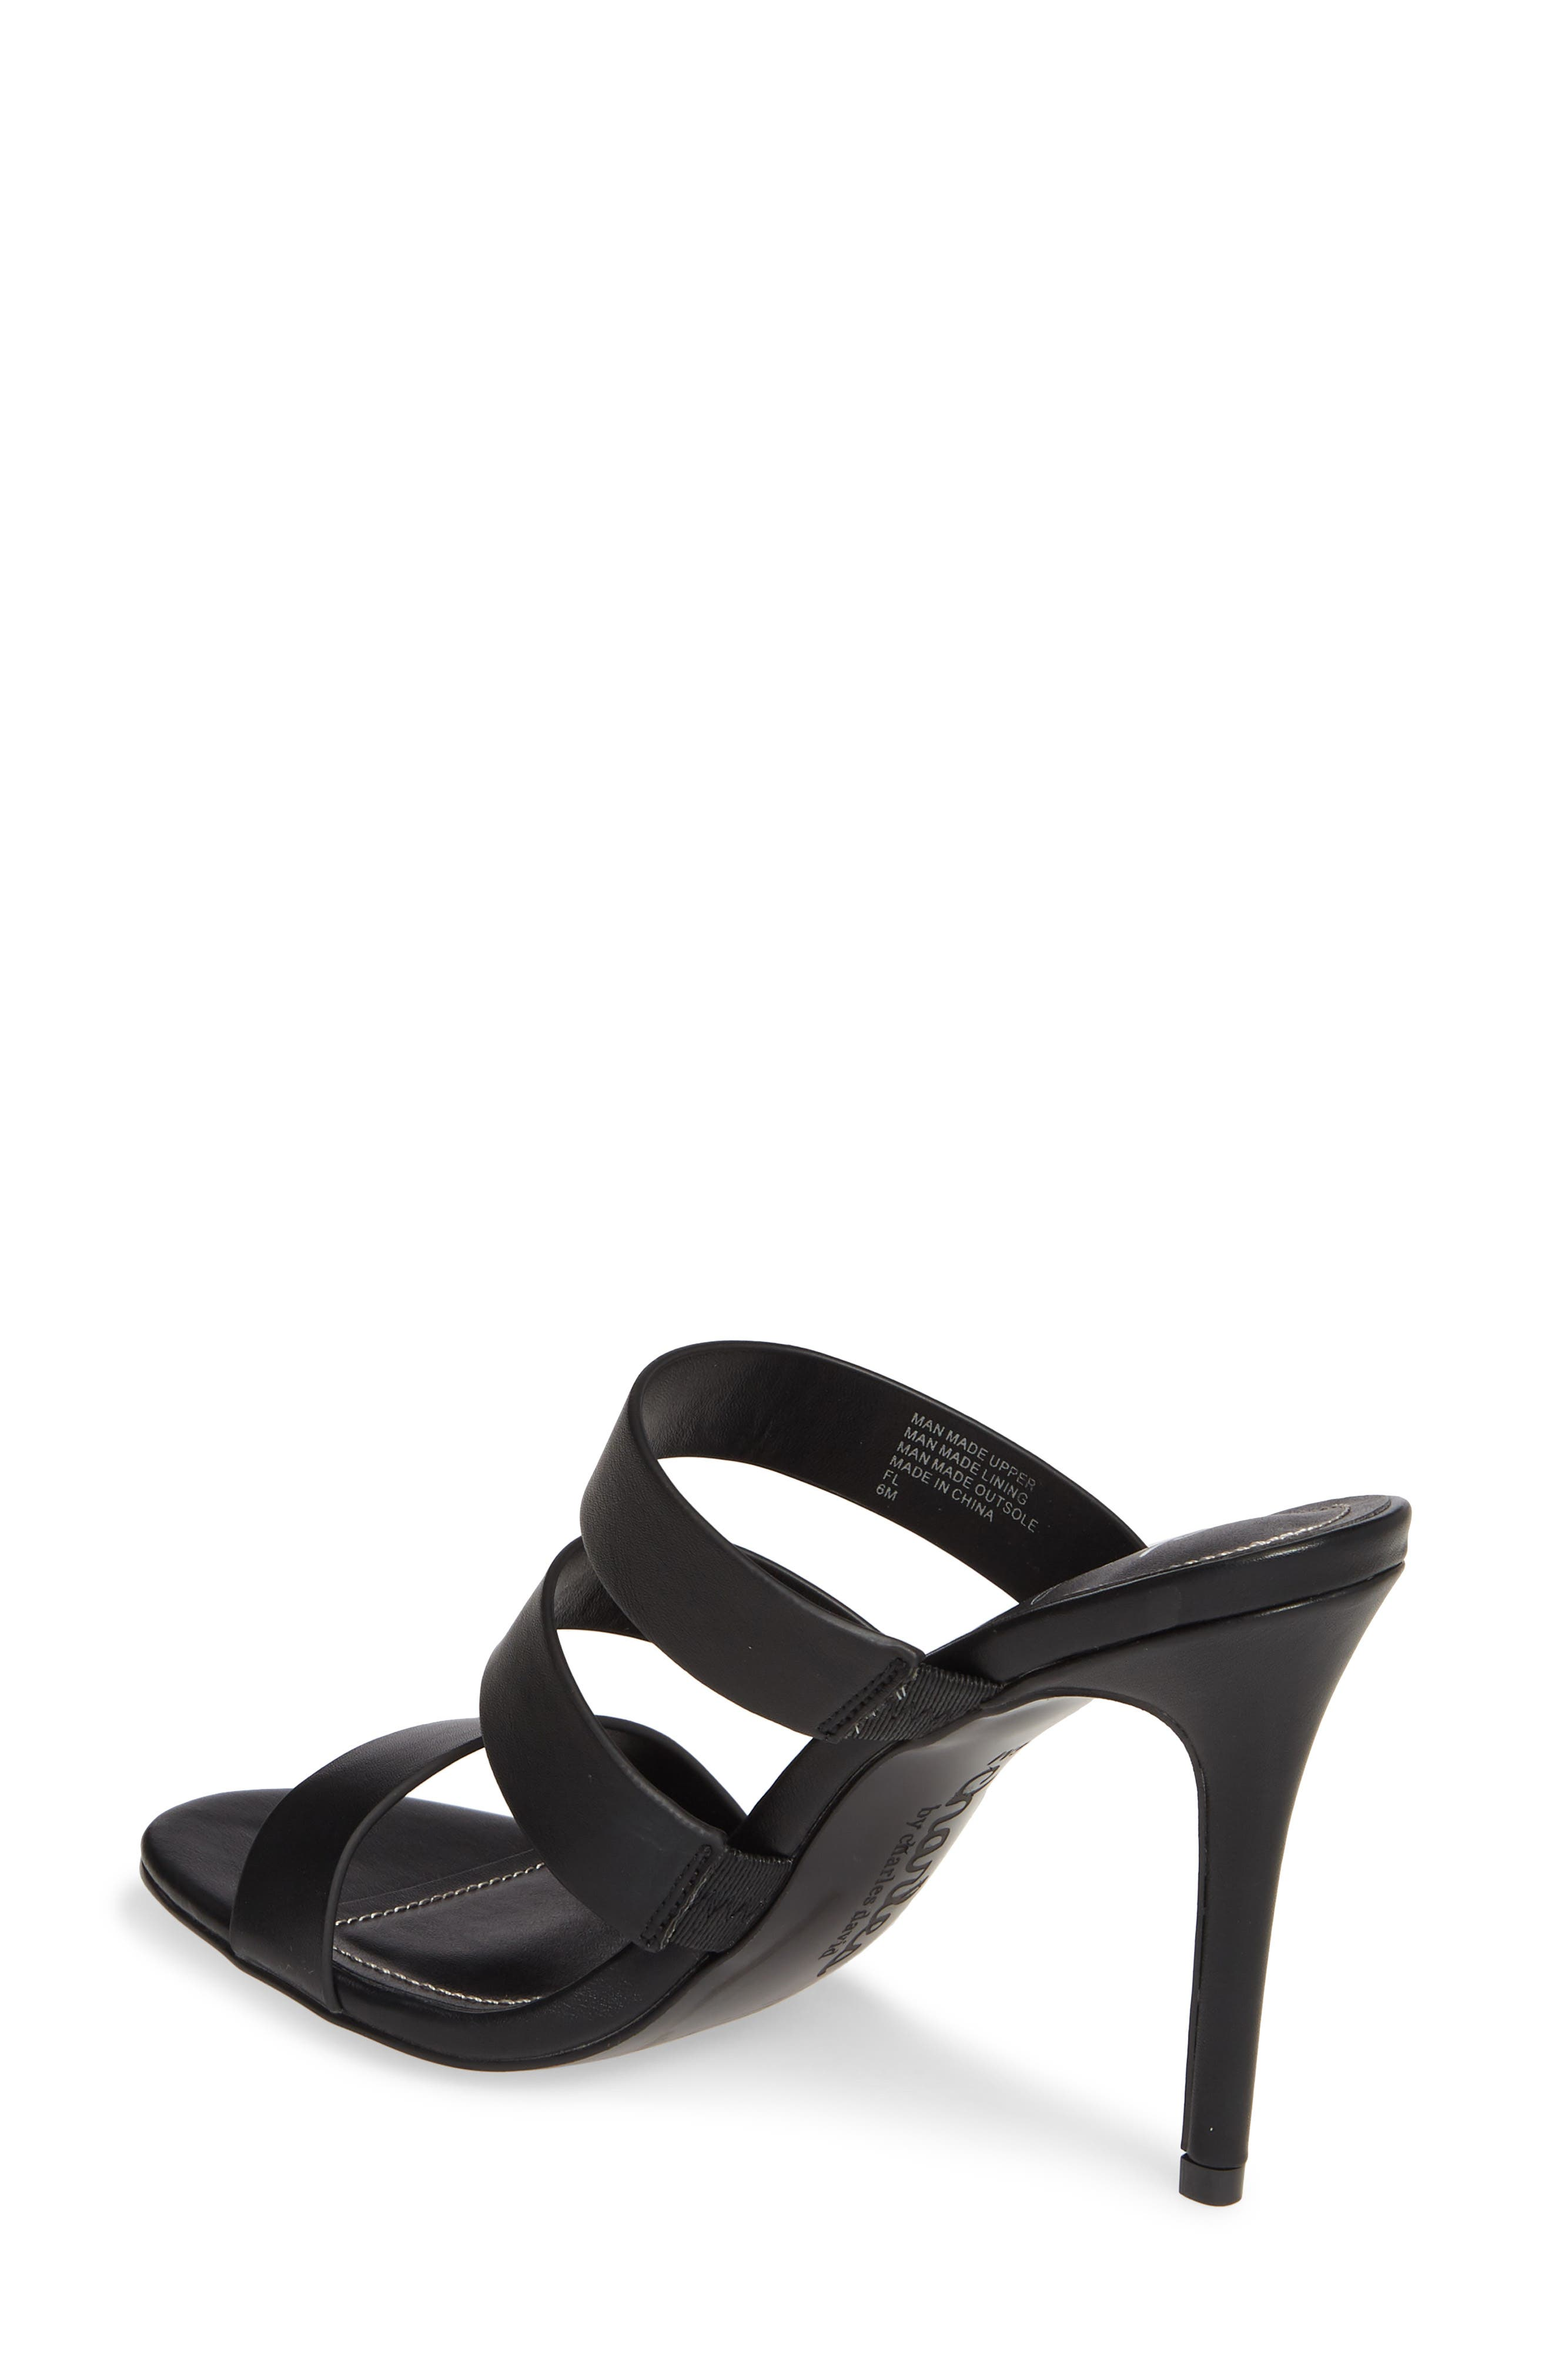 CHARLES BY CHARLES DAVID, Rivalary Slide Sandal, Alternate thumbnail 2, color, BLACK FAUX LEATHER